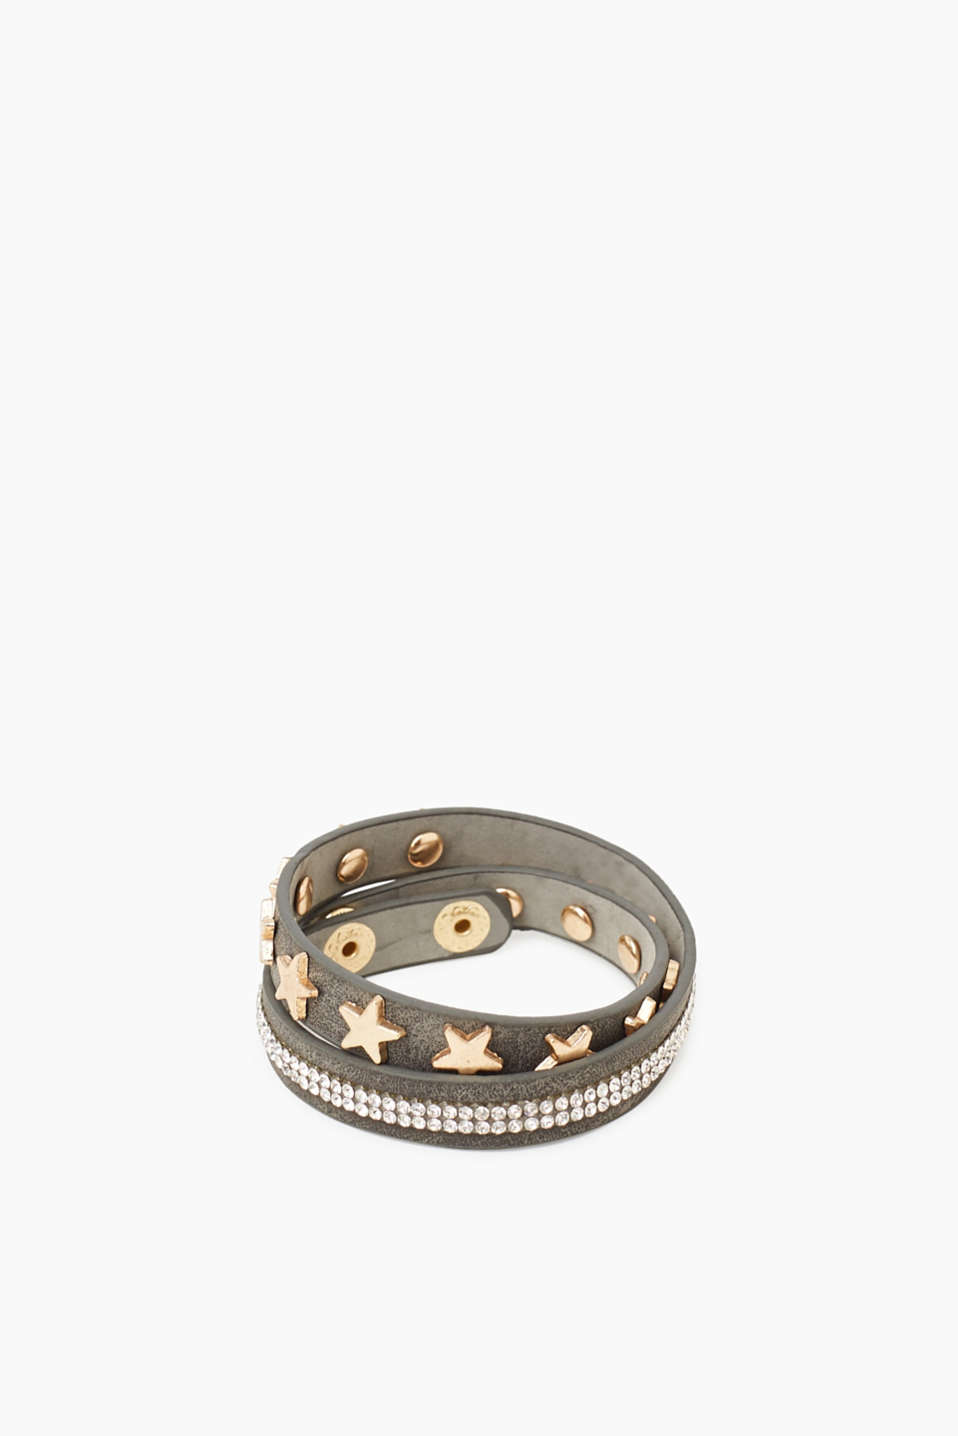 Esprit - Armband in Leder-Optik mit Strass-Dekor